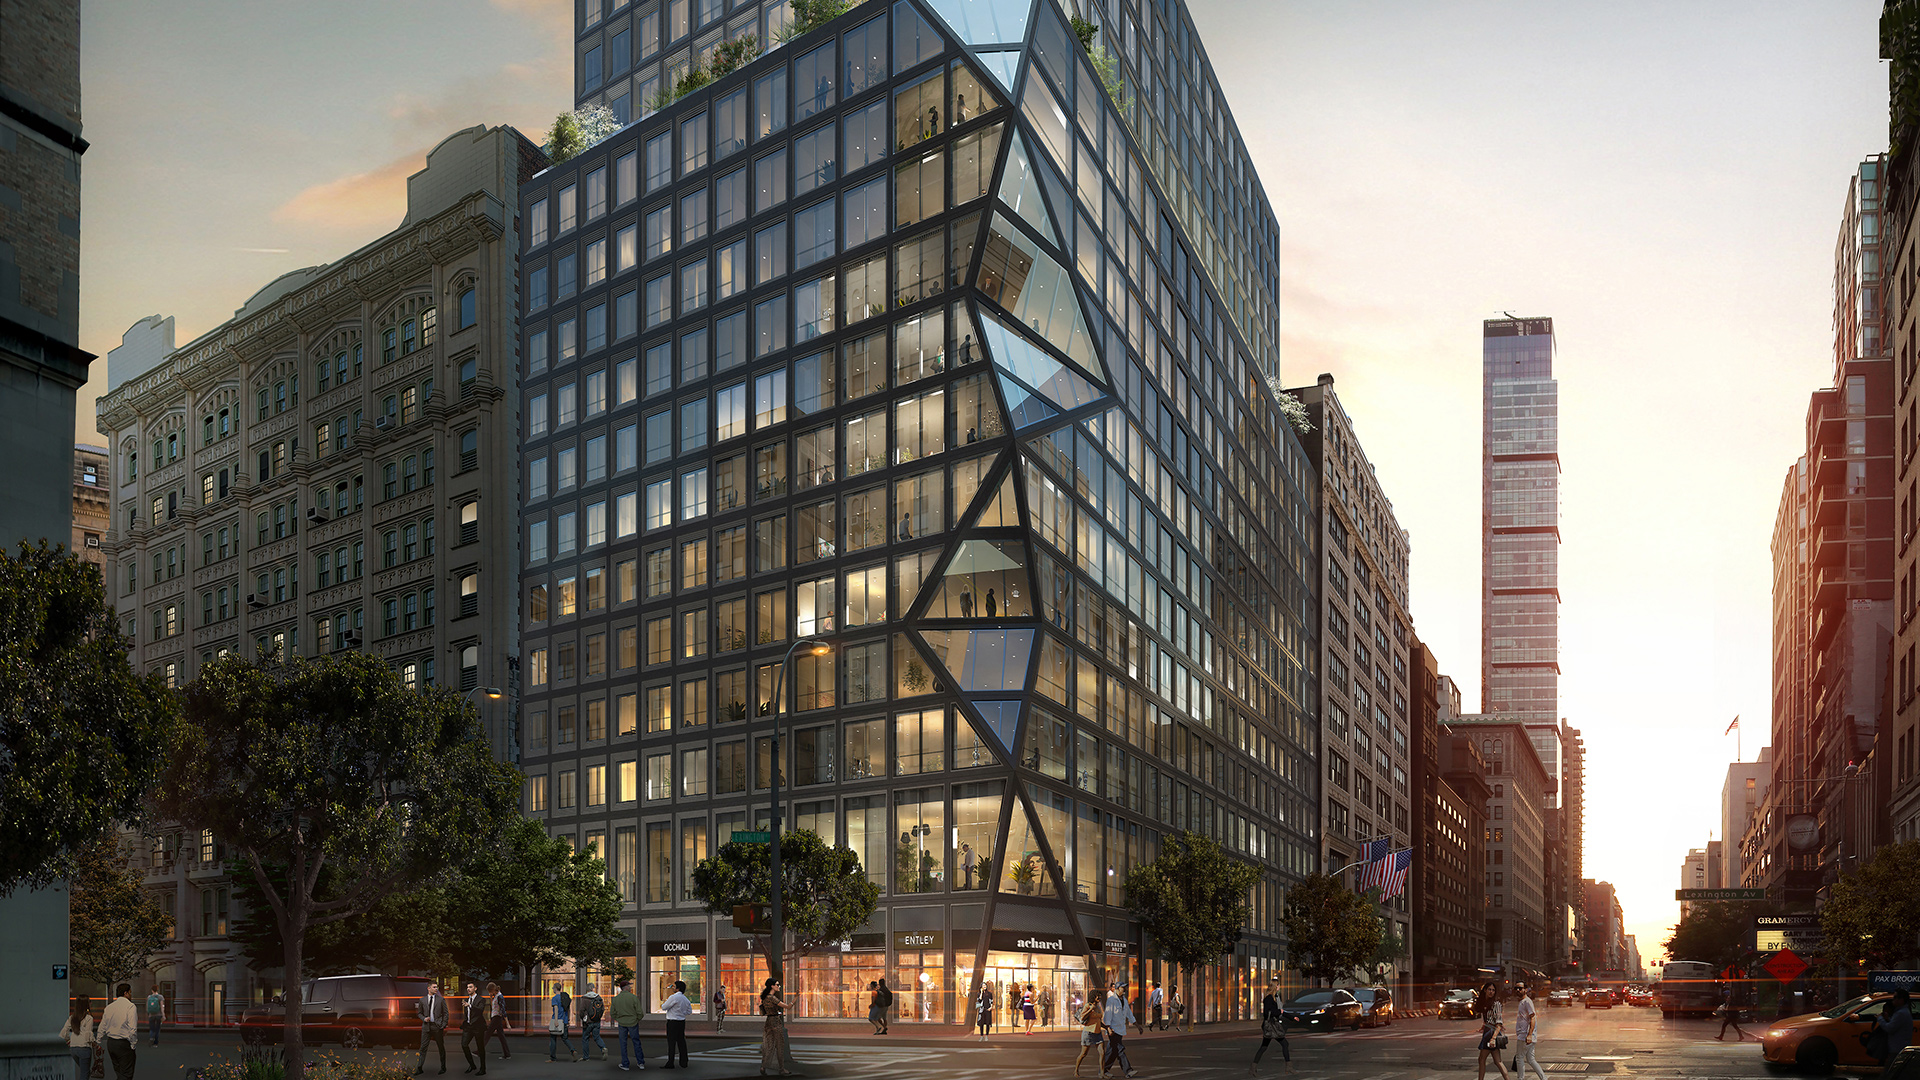 condos for sale in new york 121 east 22nd homes for rent in new york city new york houses for rent in new york city new york